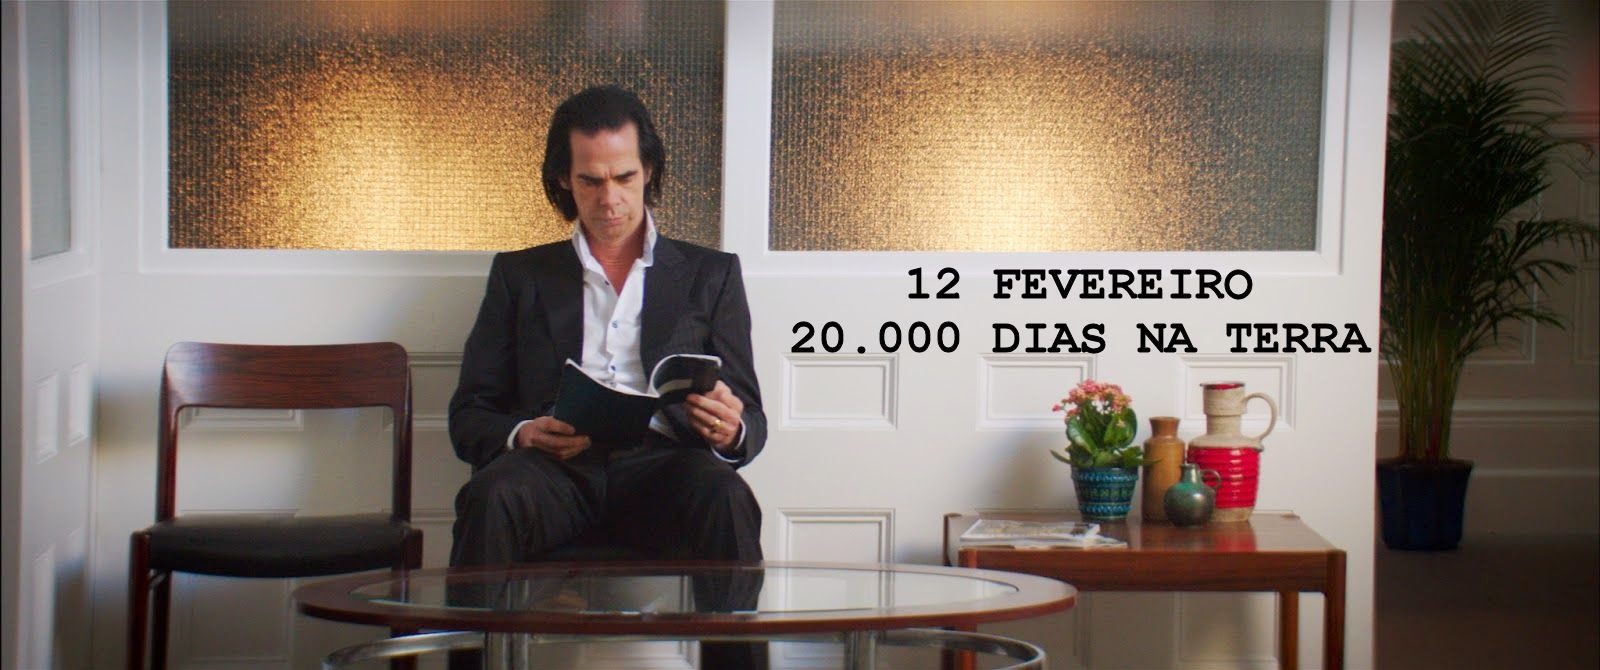 20.000 Dias na Terra - 20,000 Days on Earth (2014)